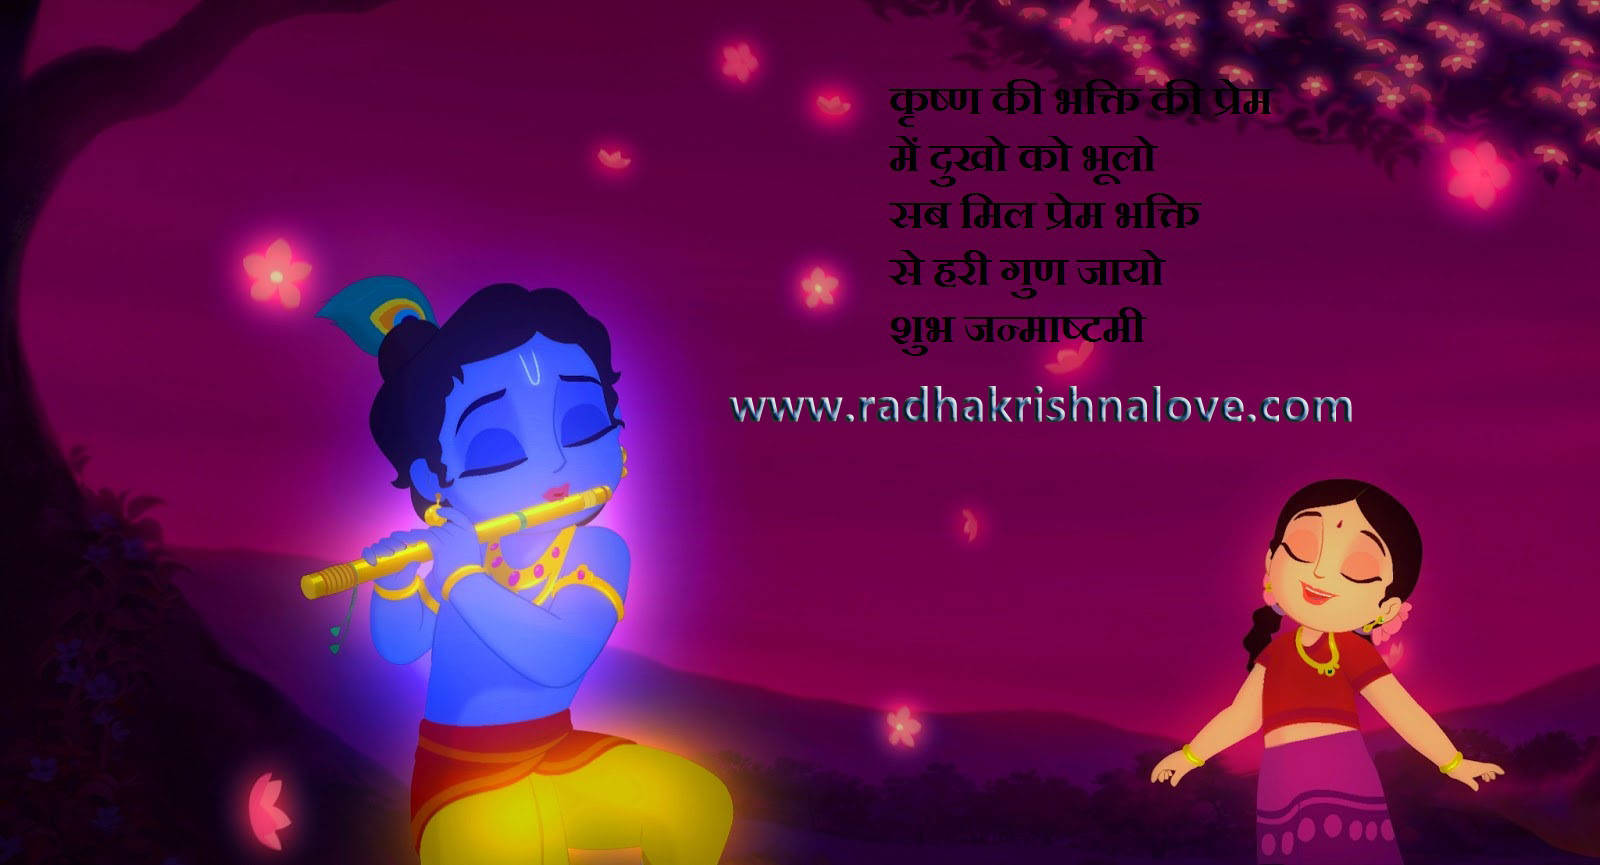 Lord Krishna Quotes Quotes Love Between Radha Krishna Radha Krishna Love Quotes